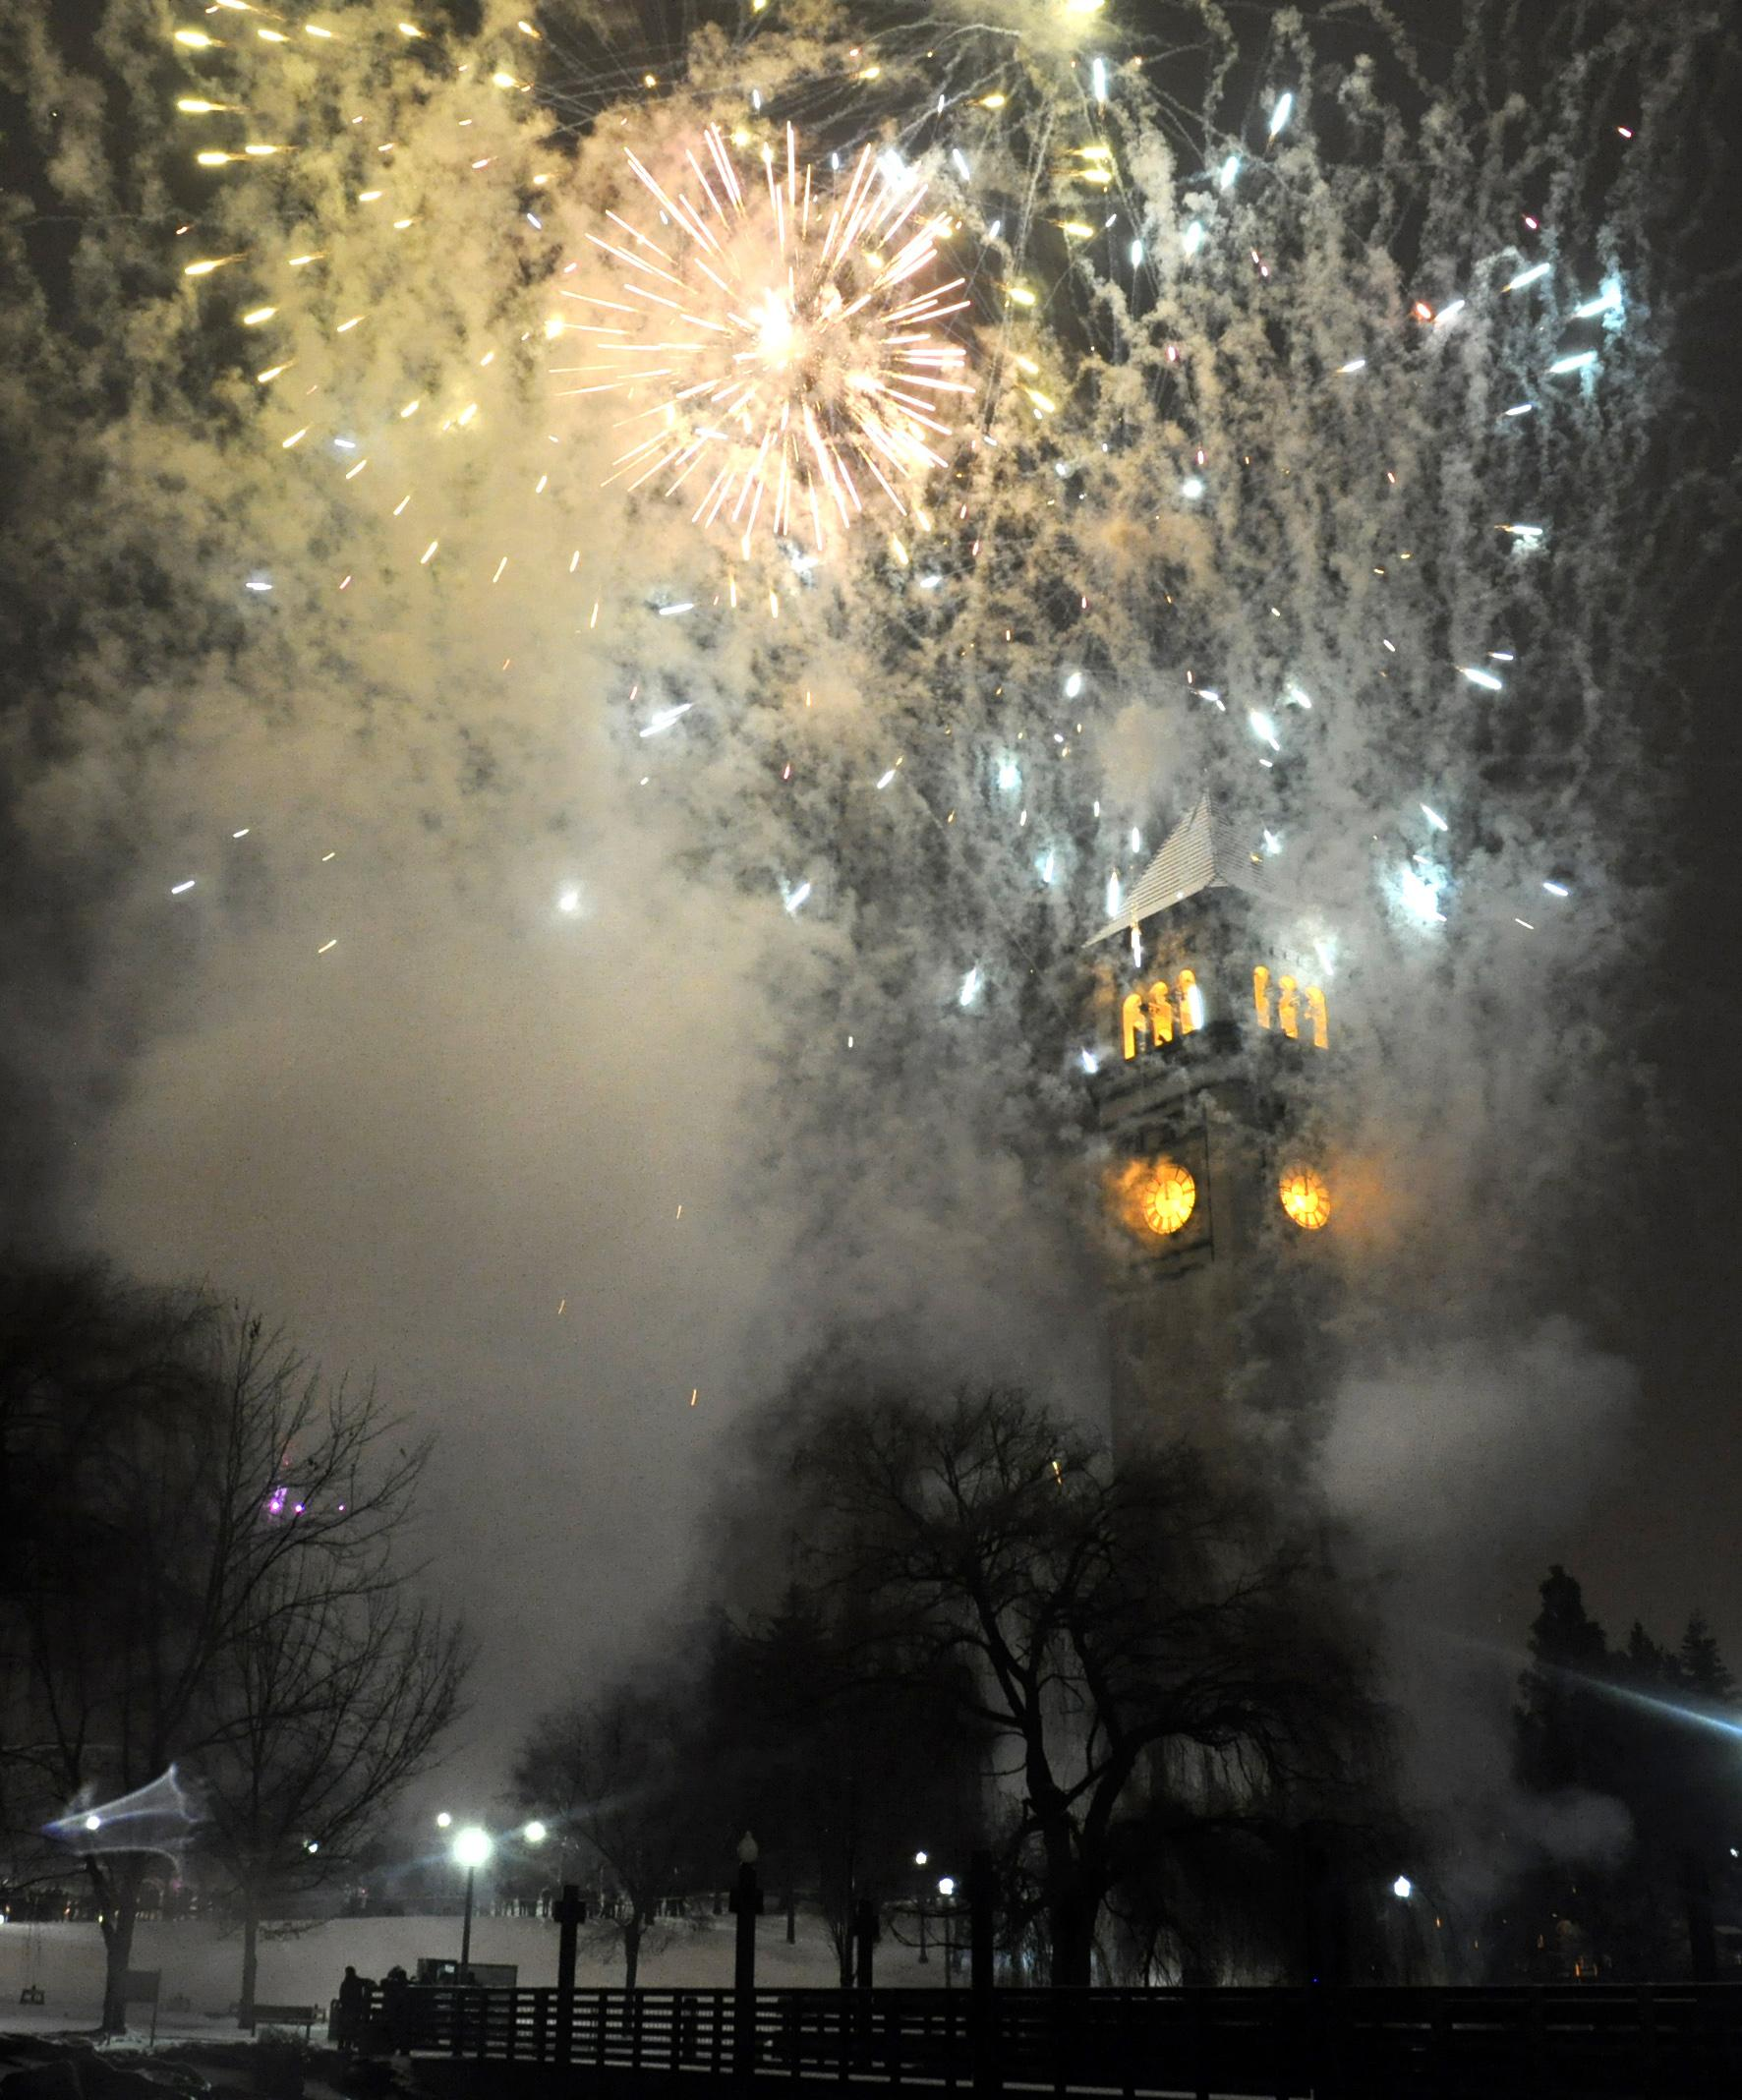 fireworks burst over the riverfront park clocktower as 2009 turns to 2010 in spokane